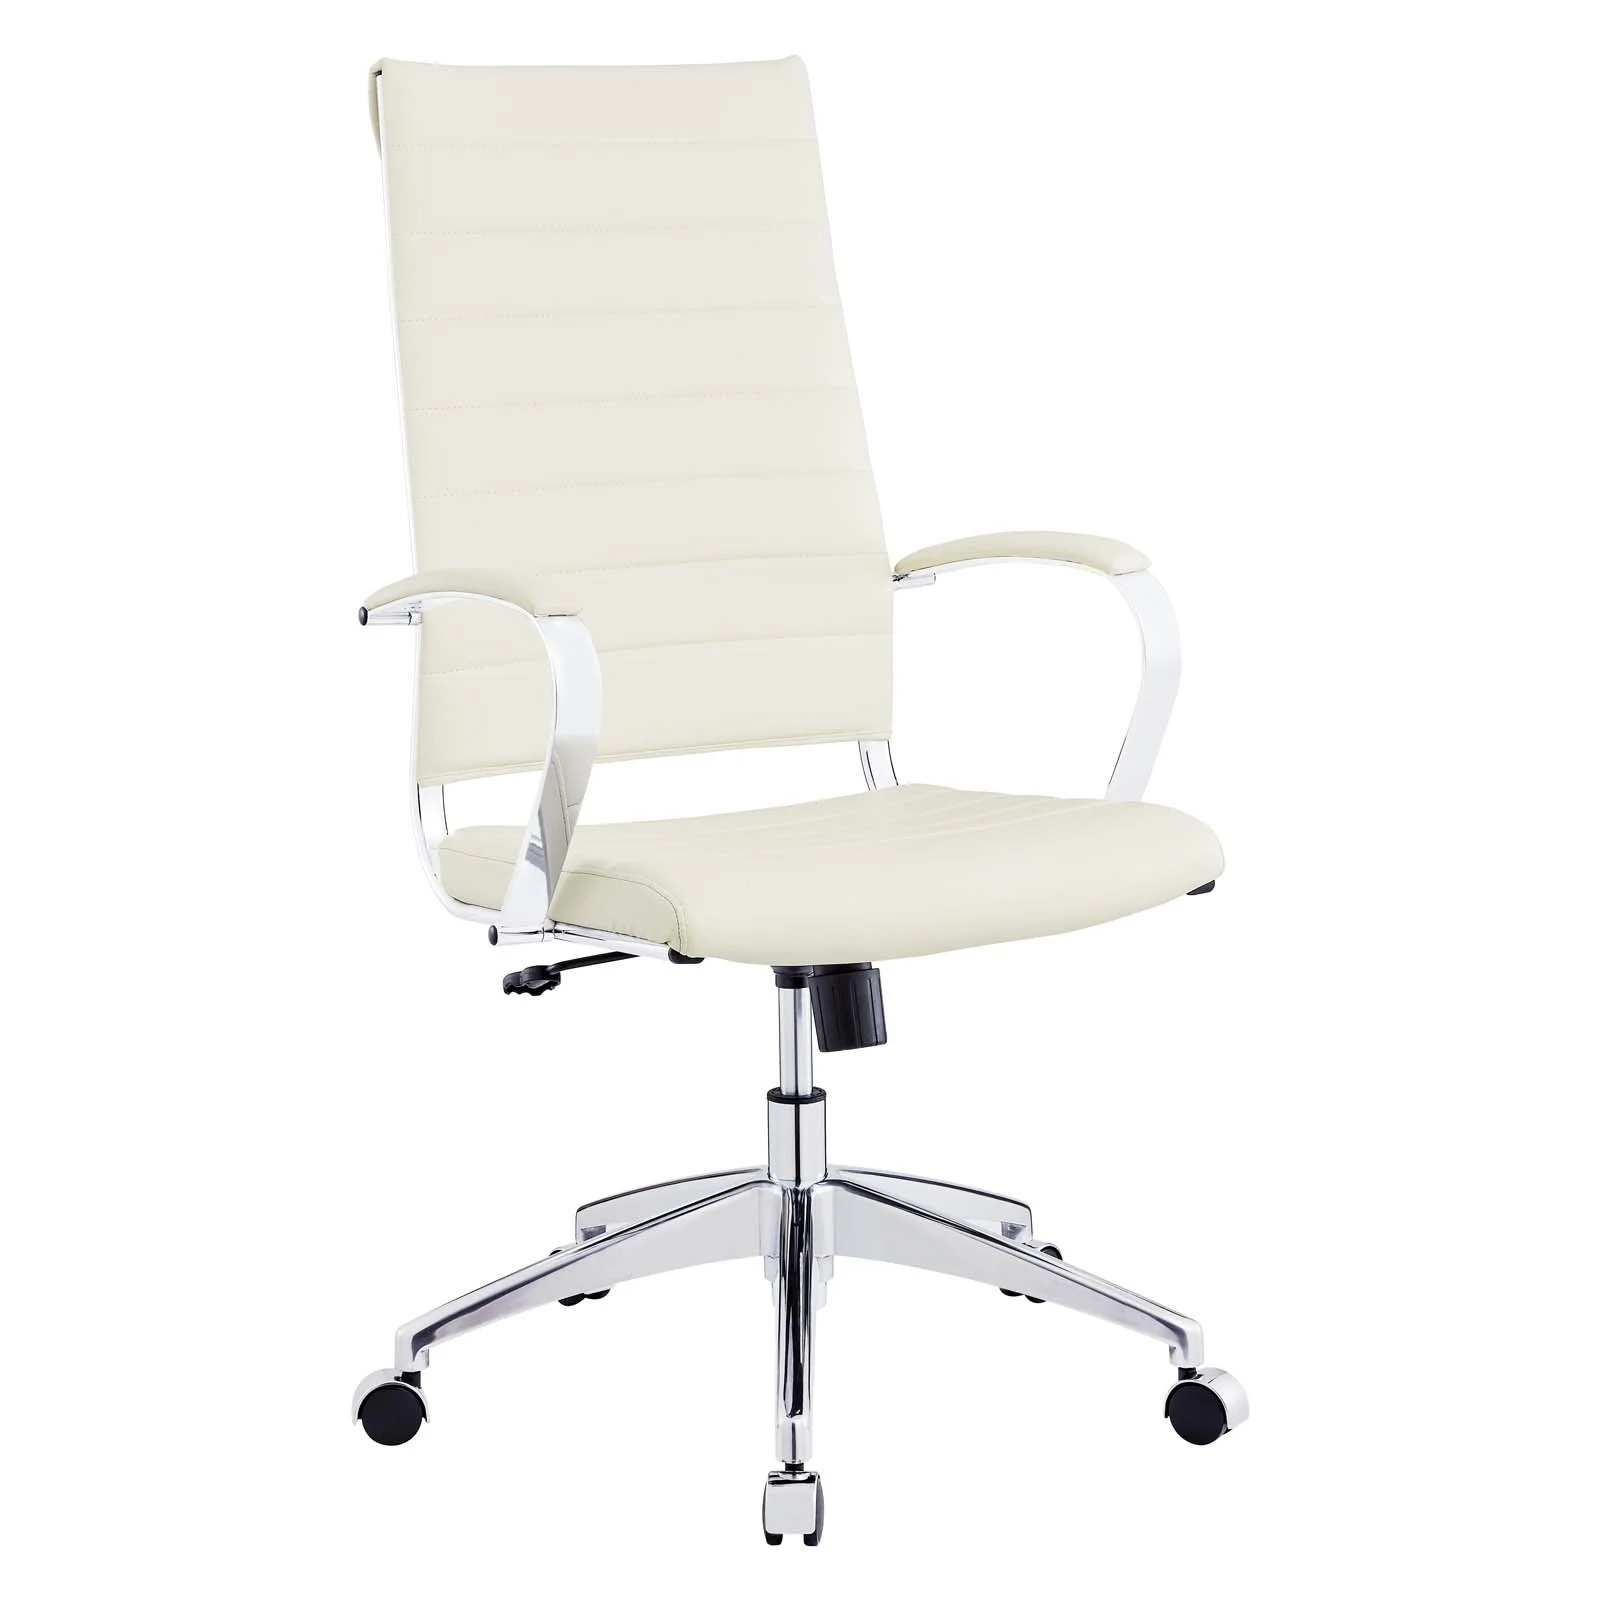 Highback Office Chair in White